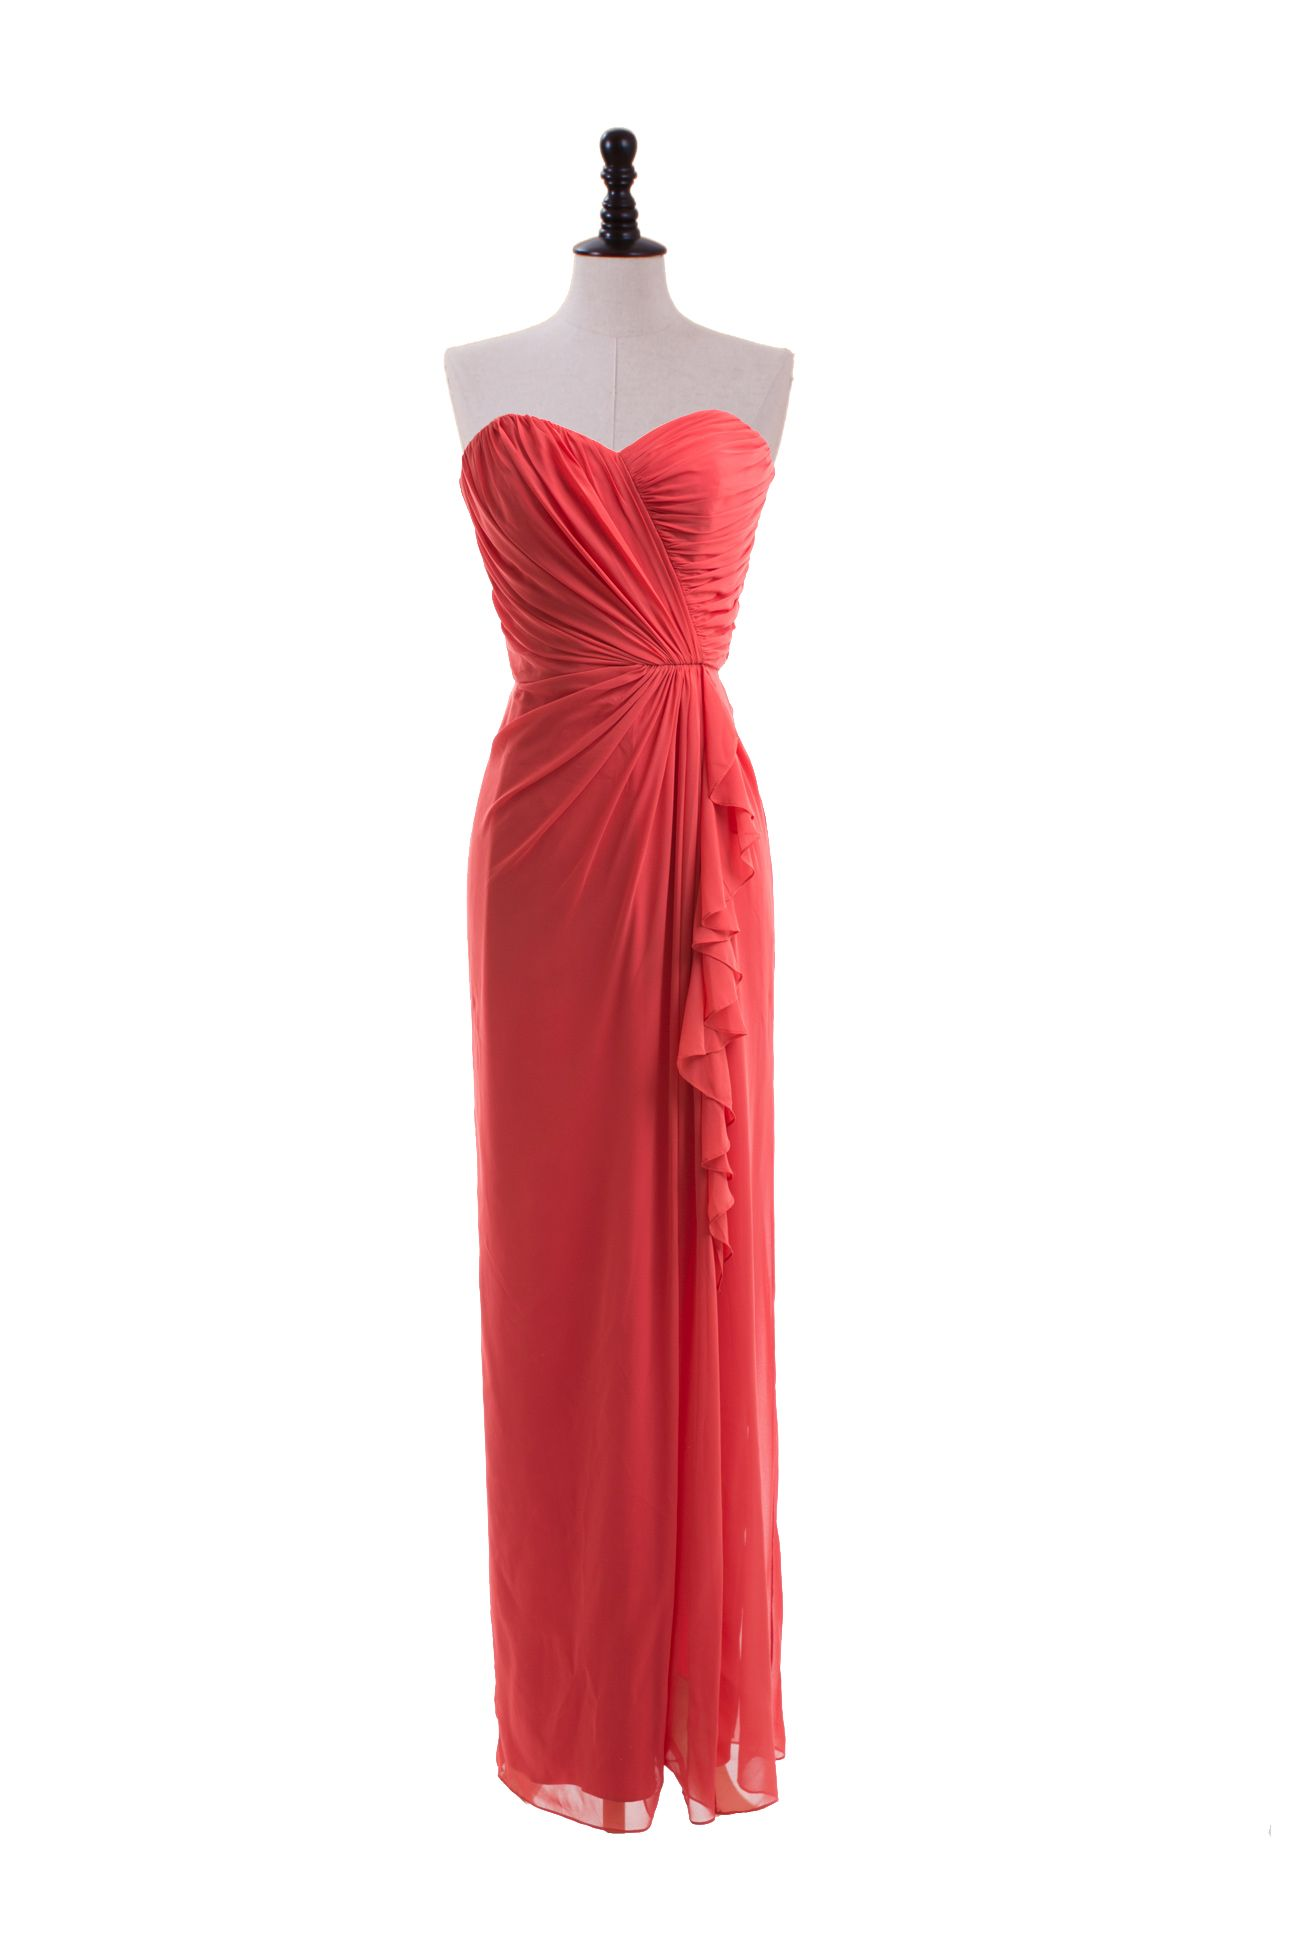 Sweetheart dress with bias side ruffle skirt i want it in black